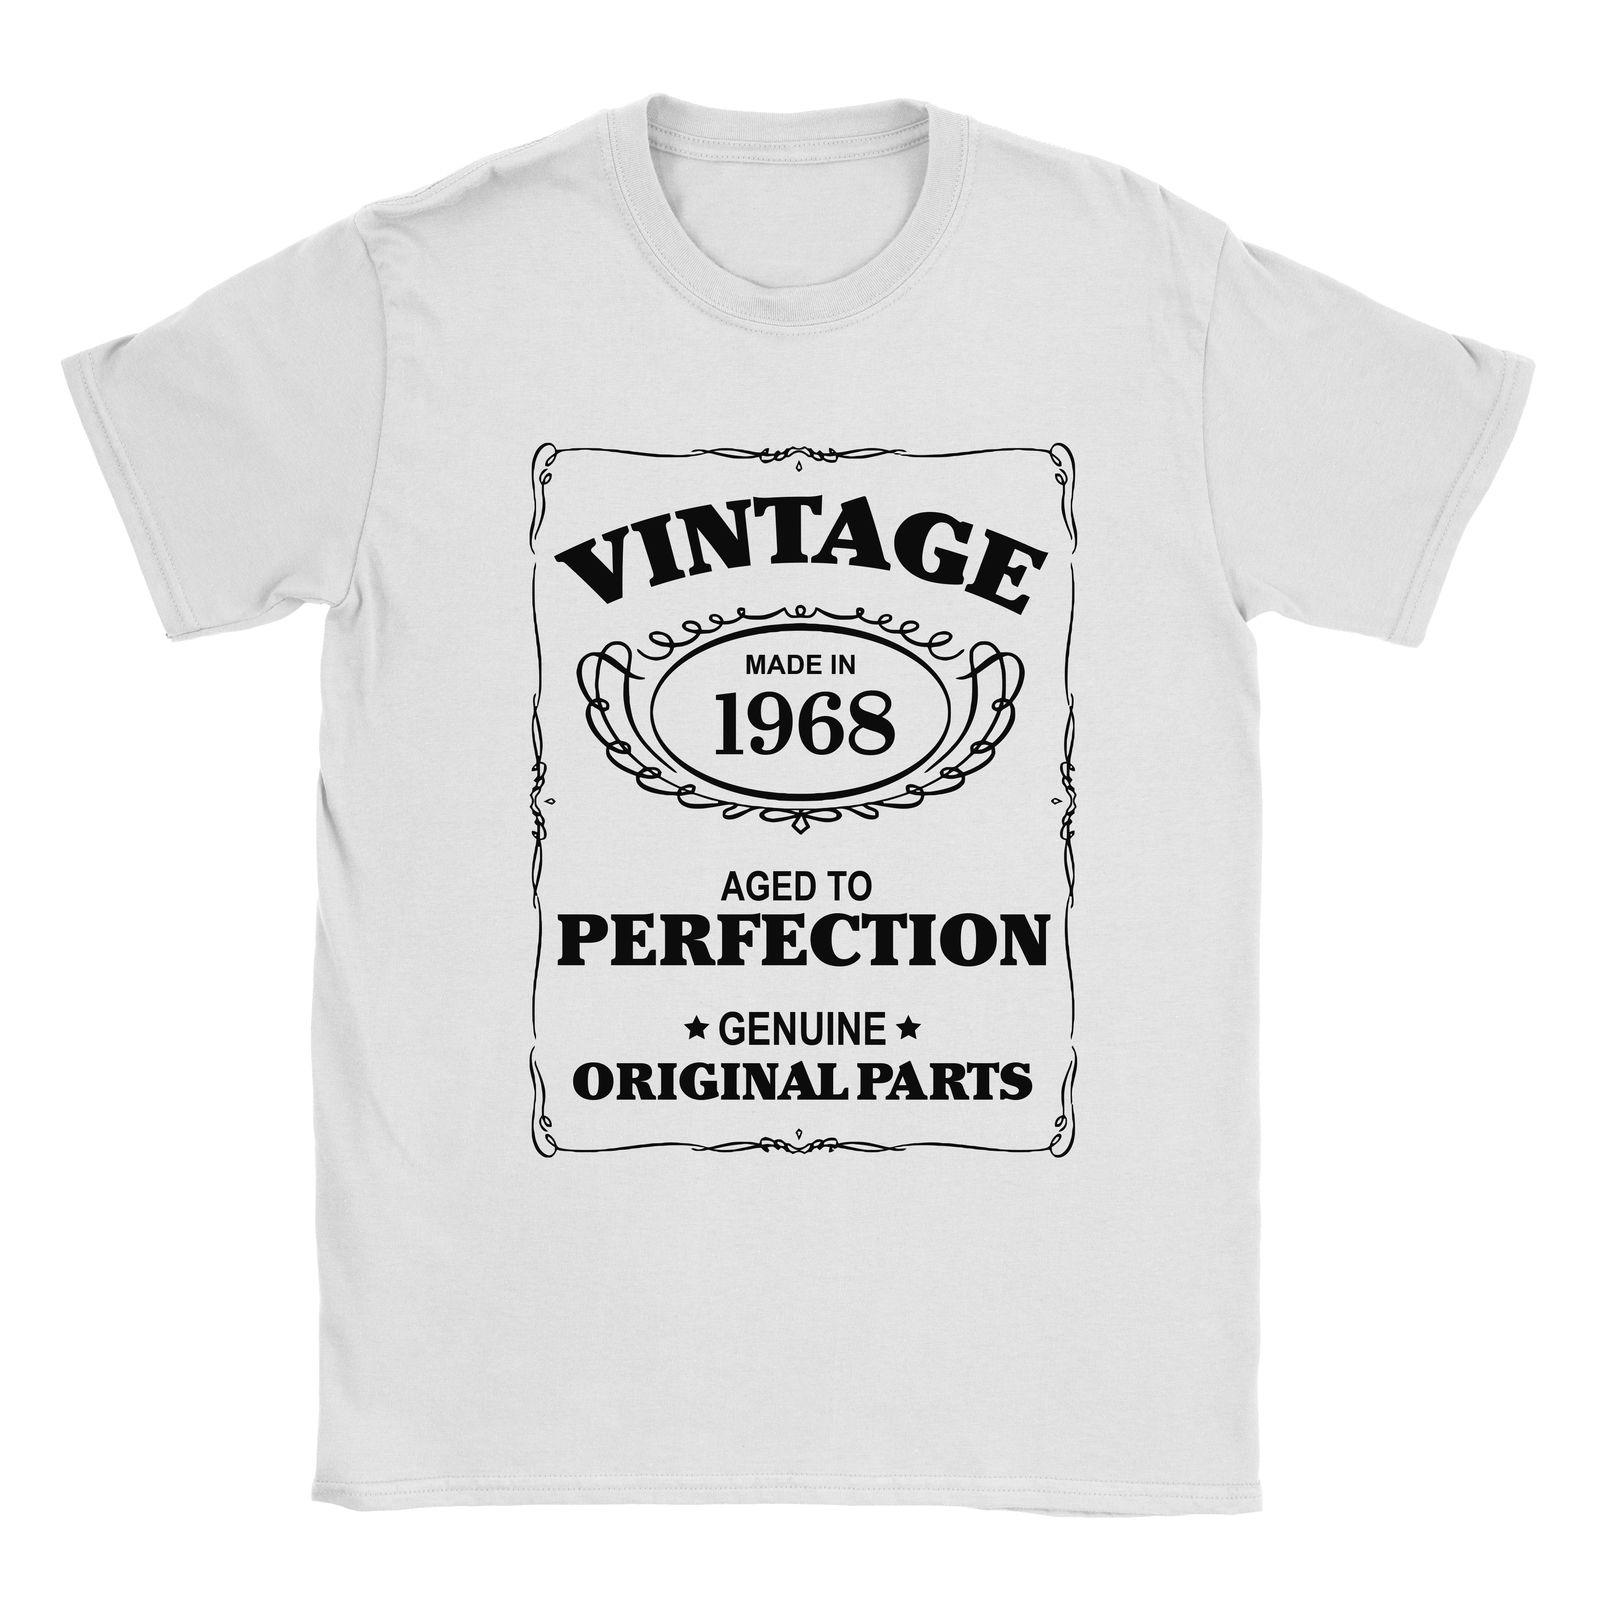 50th Birthday T Shirt Born In 1968 Mens Present Gift Age Aged To Perfection Tee Online Shopping 24 Hour Shirts From Notkillape 1101